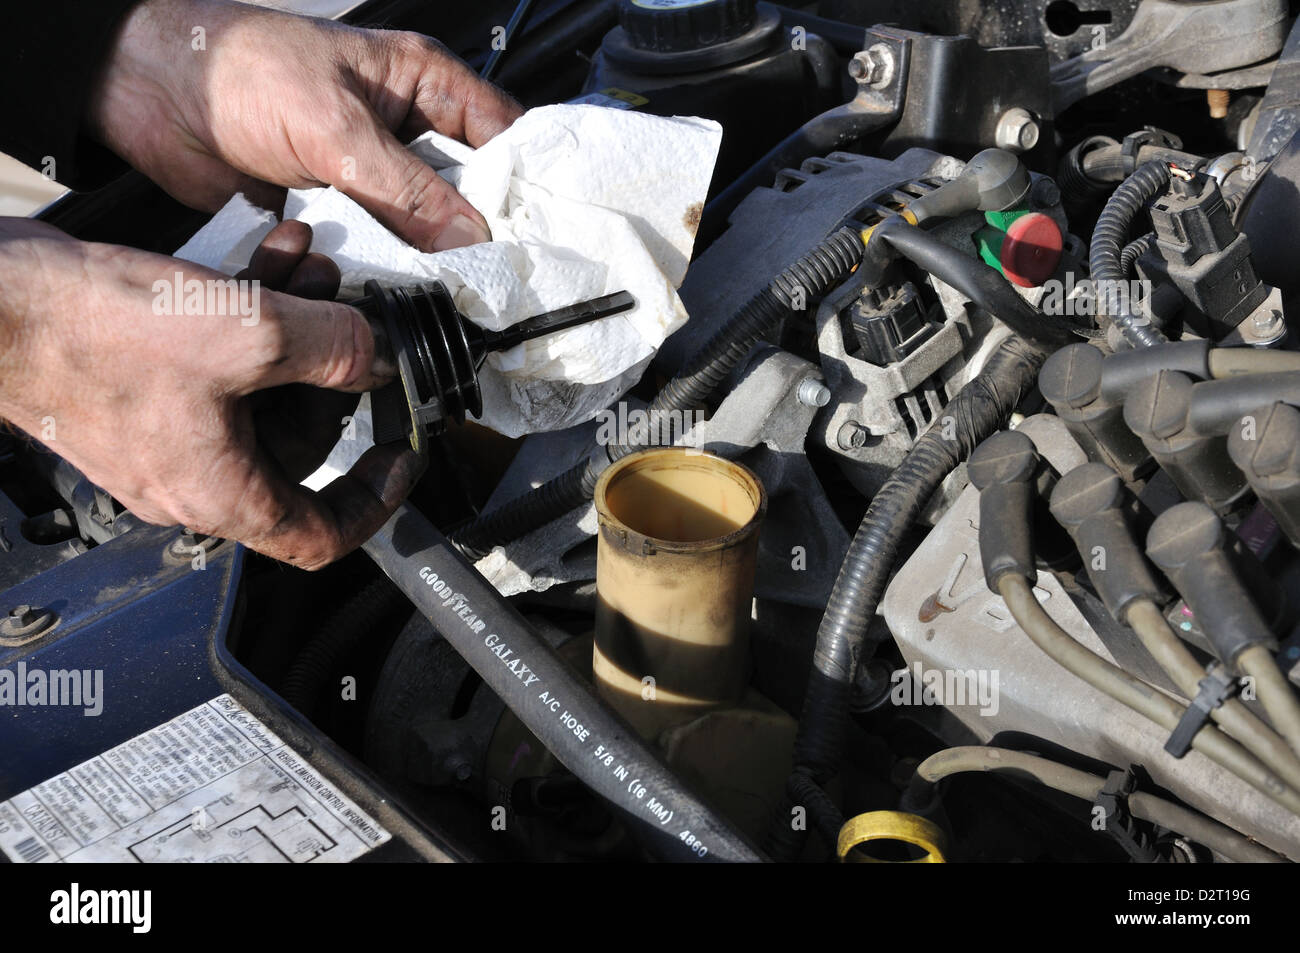 Man Working On His Car Checking Power Steering Fluid Level Stock Photo Alamy